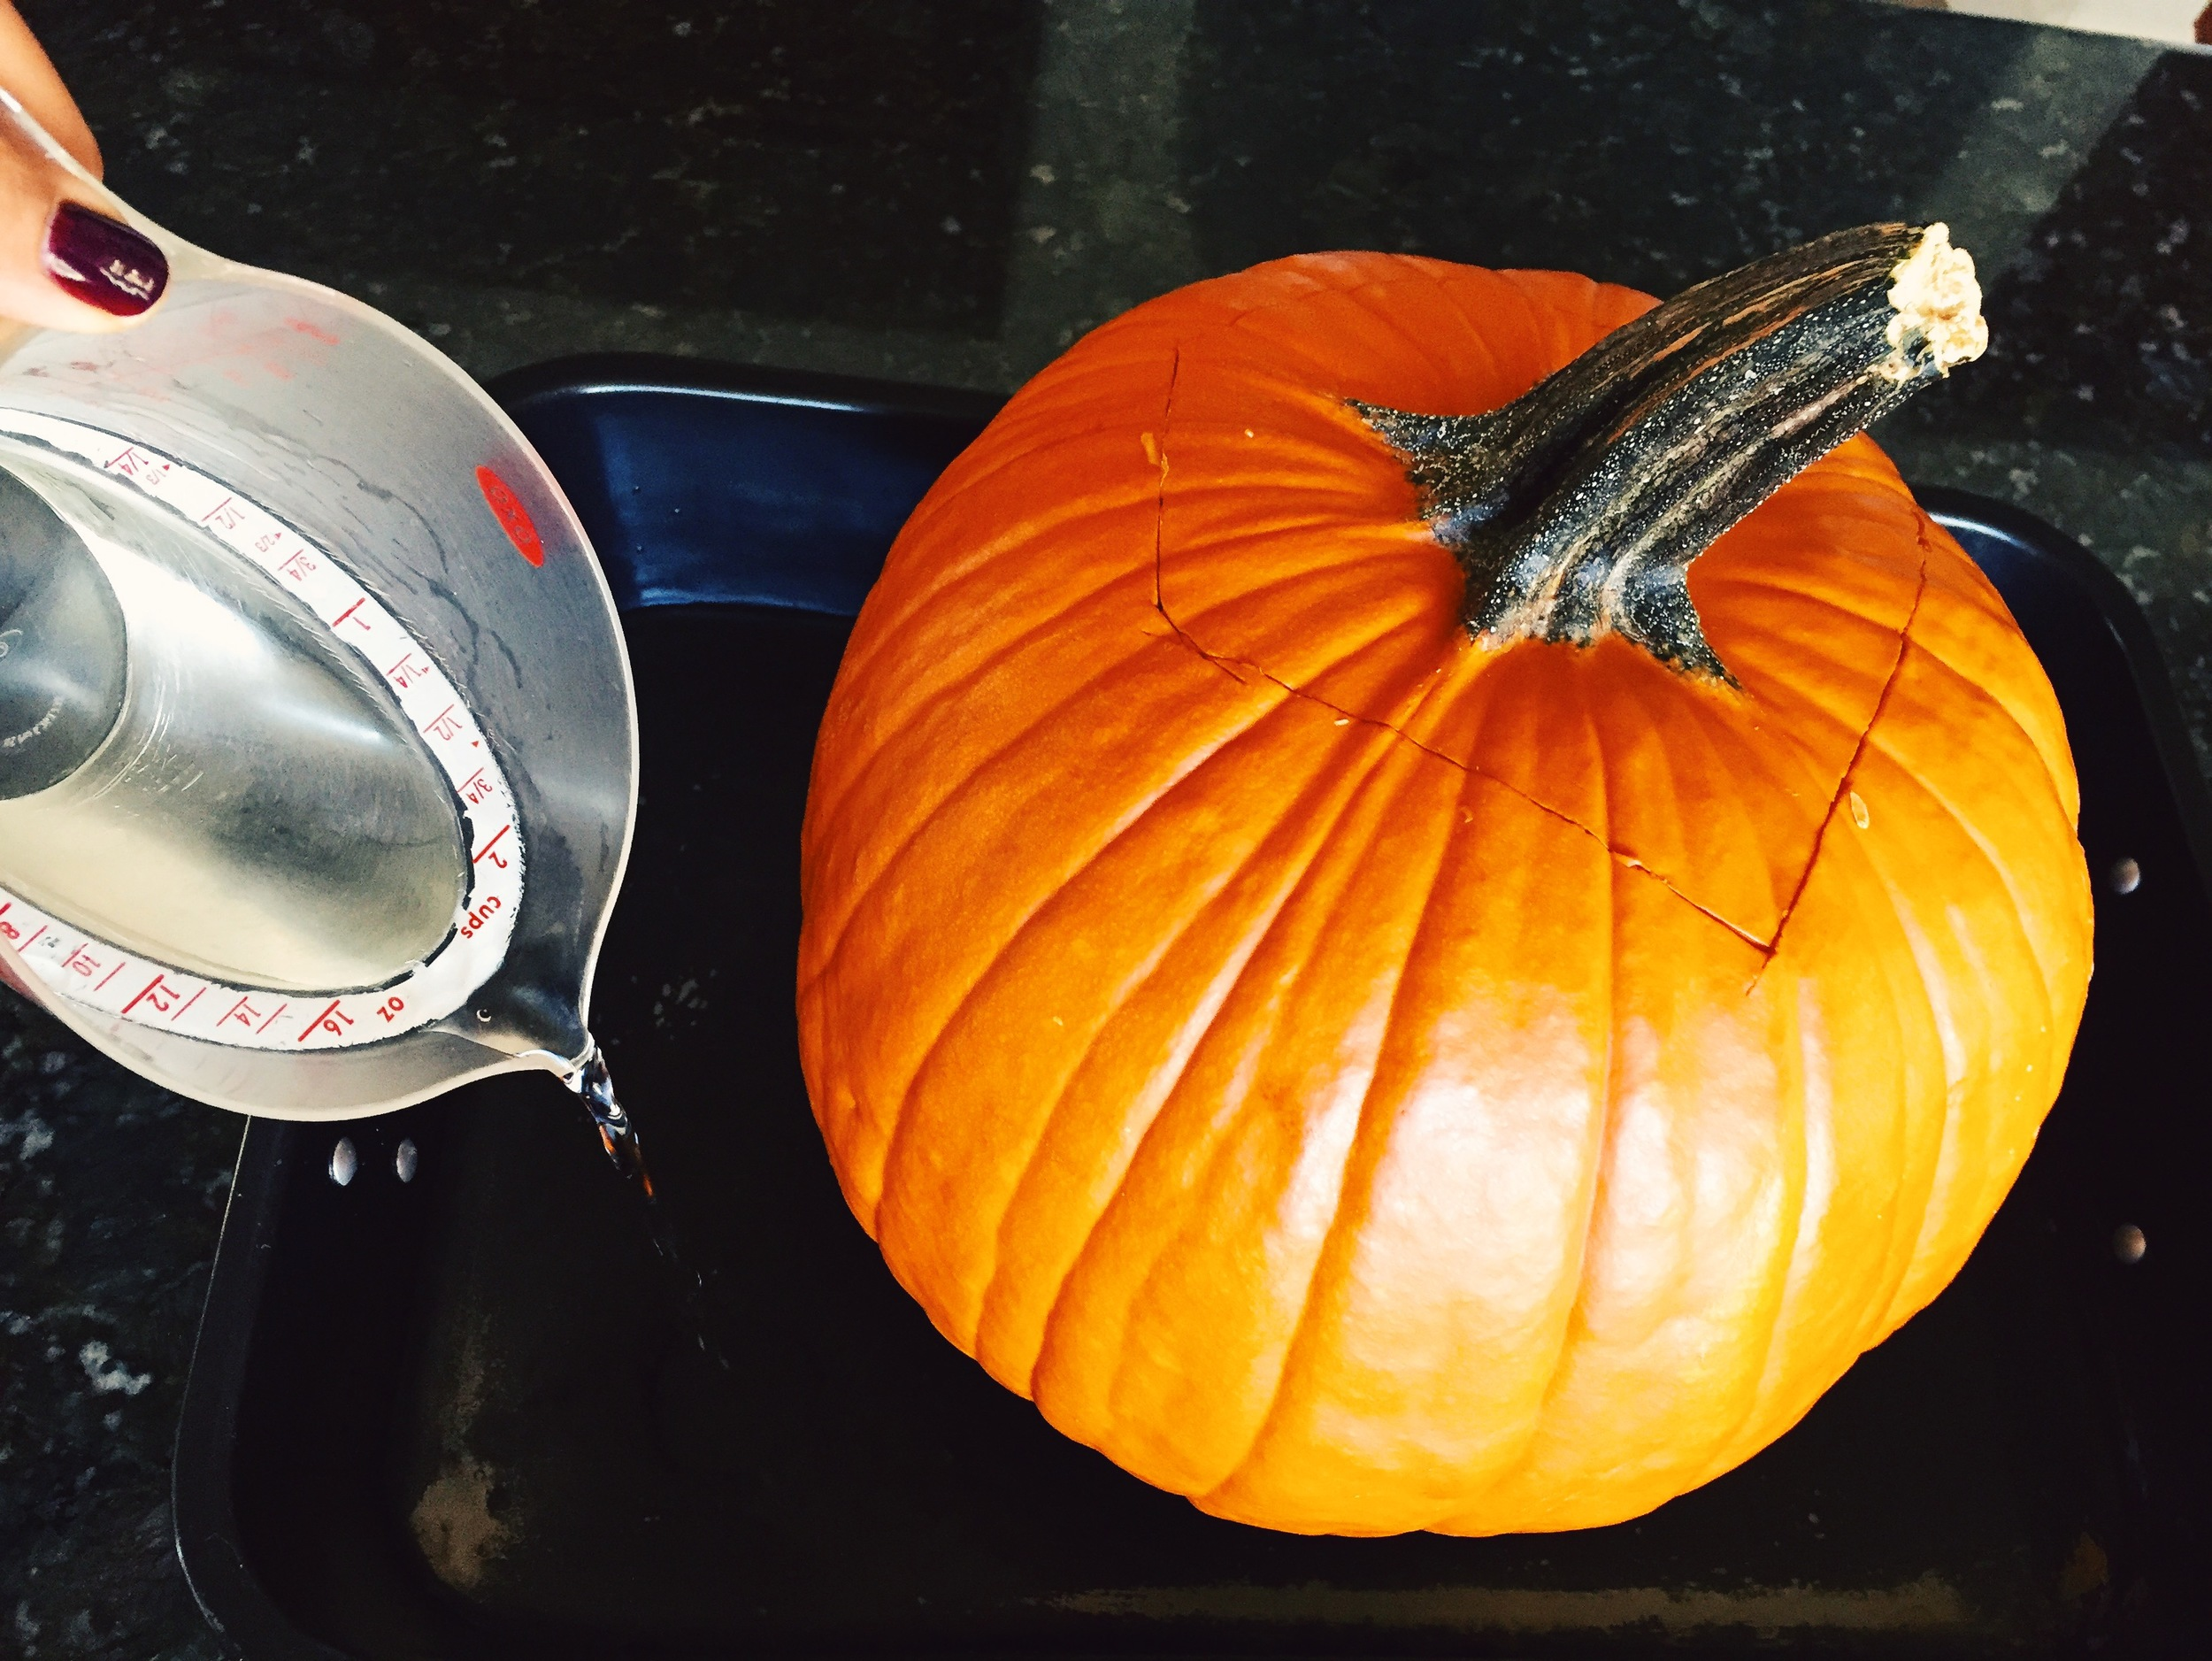 Put top back on the pumpkin. Place it in the roasting pan. Cover bottom of pan with 1/2 inch of water (you can also put some beer in the water for flavor).